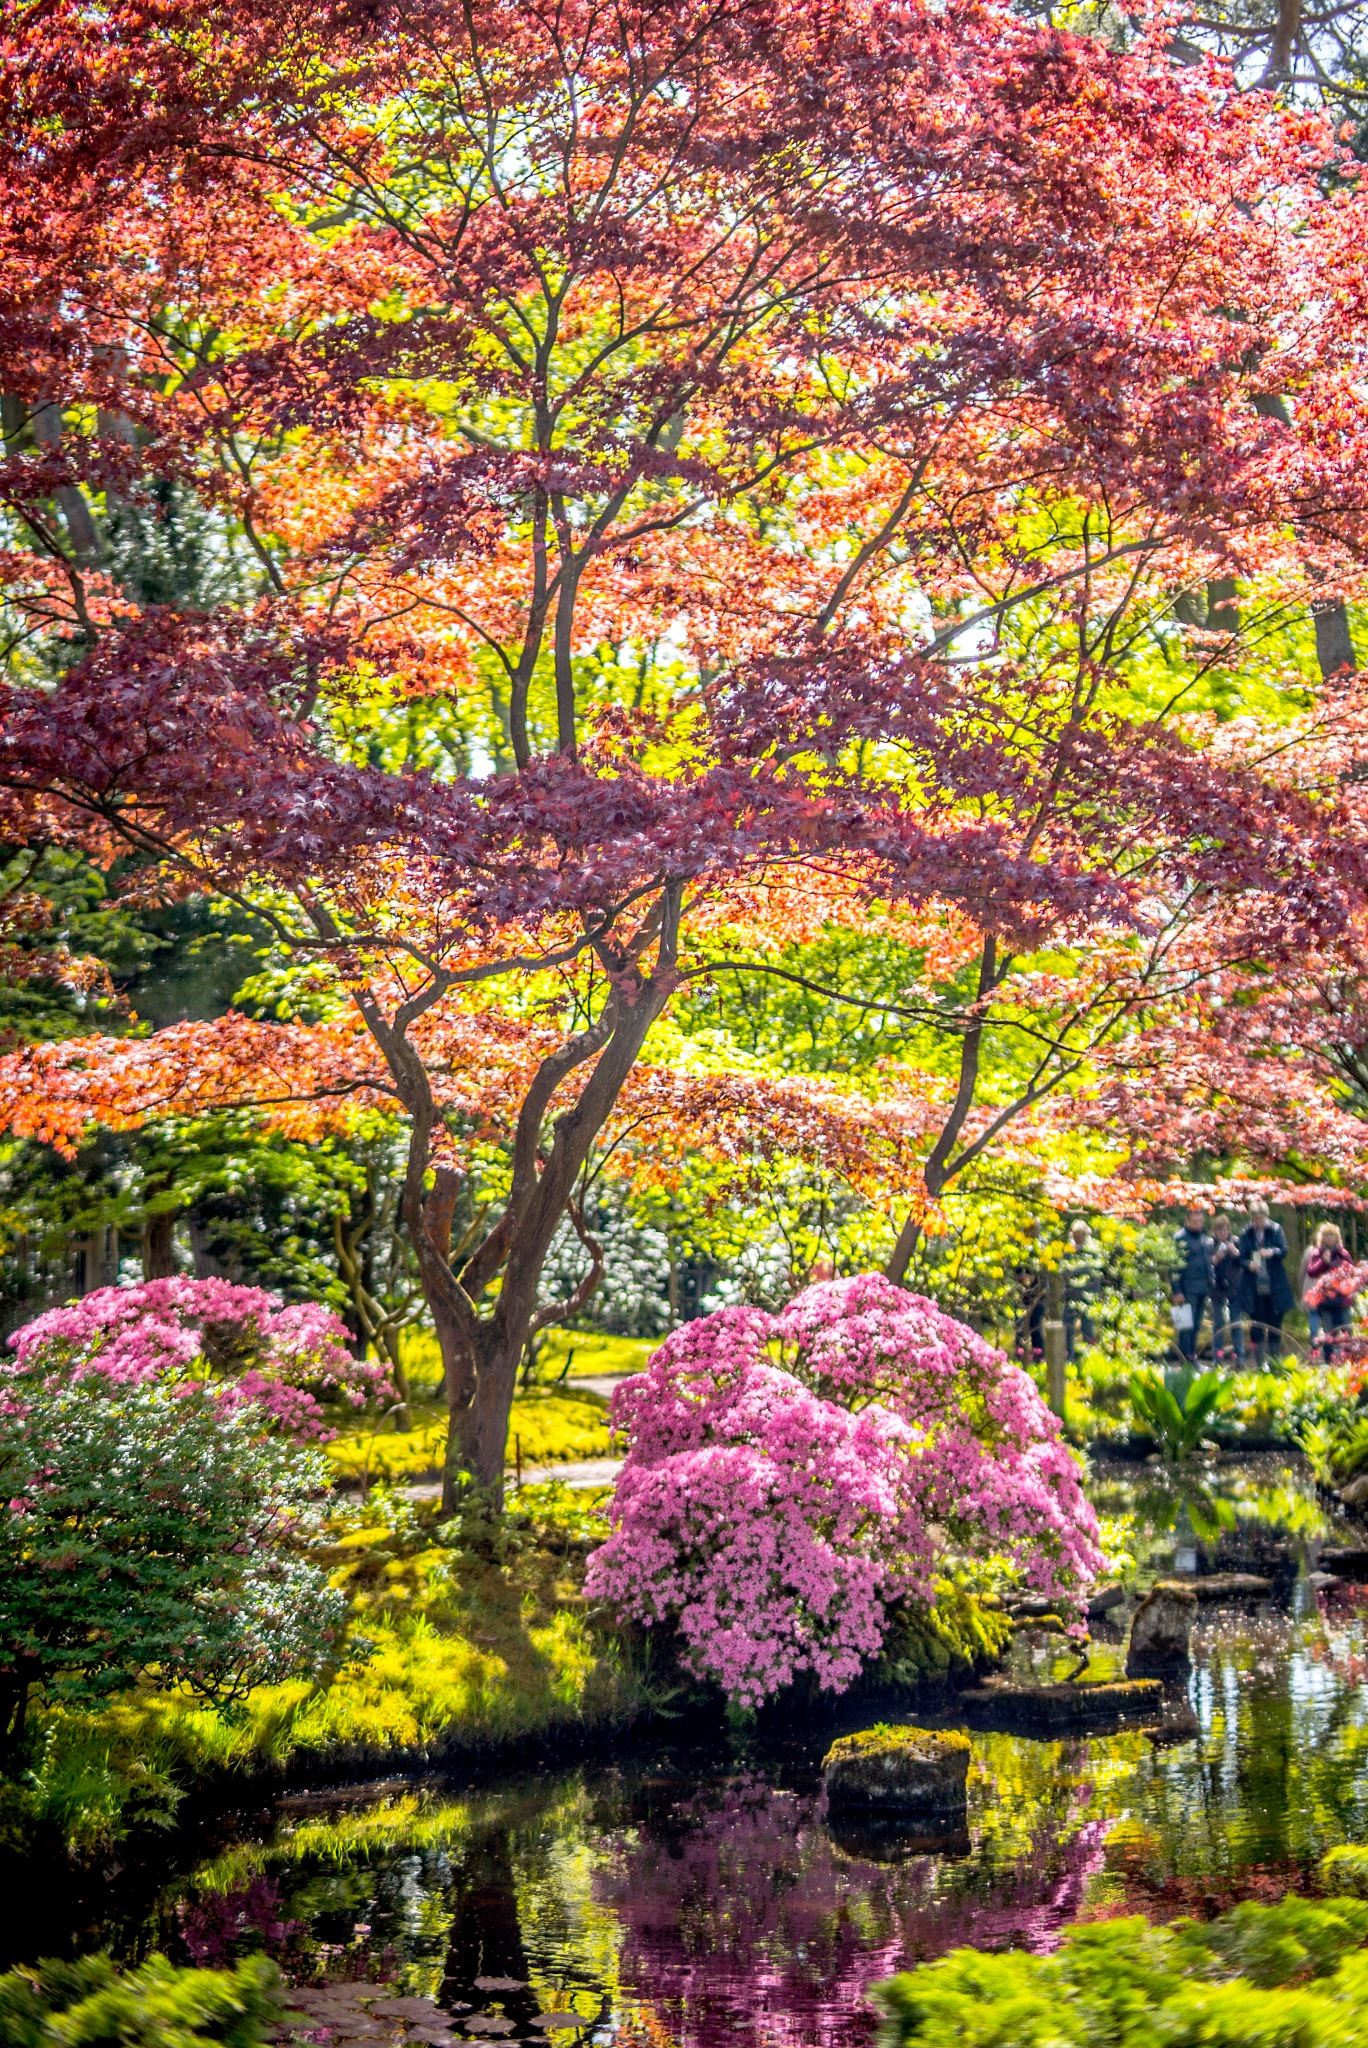 Japanese garden The Hague by fred.leeflang.7